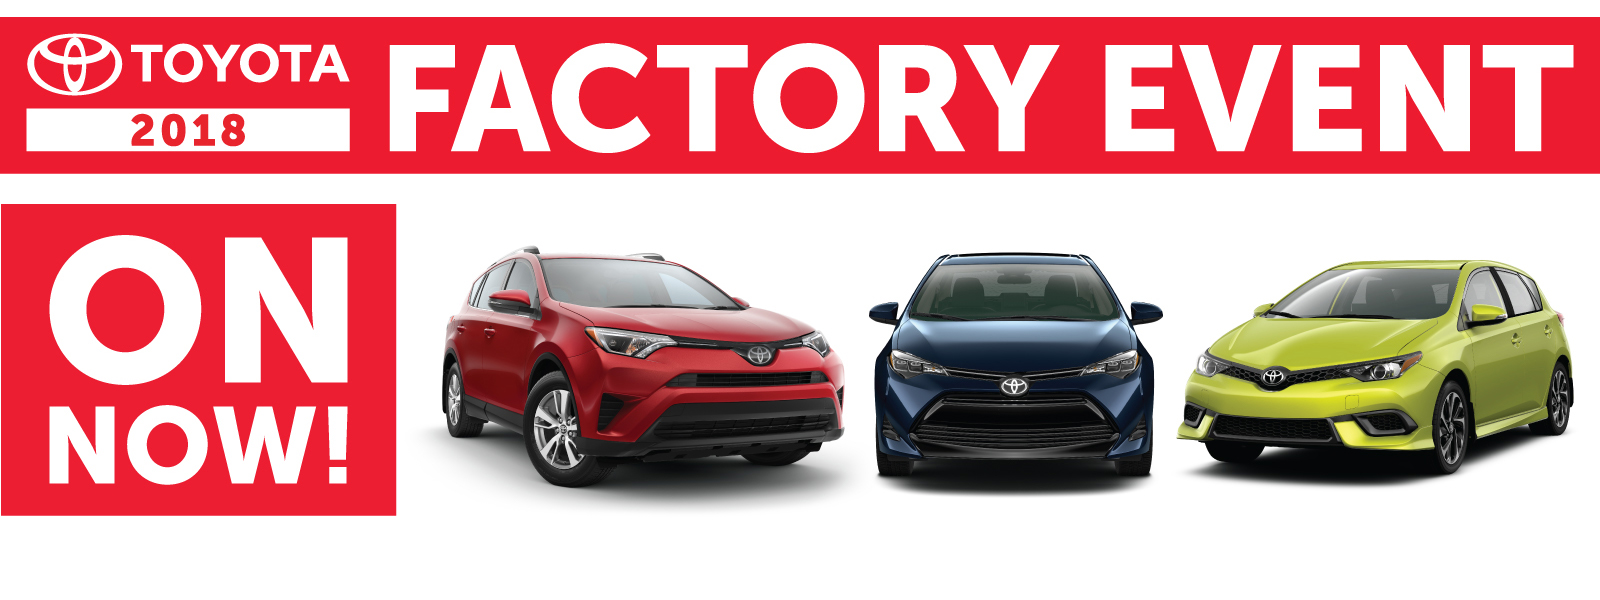 Toyota 2018 Factory Event at Sun Country Toyota in Kamloops